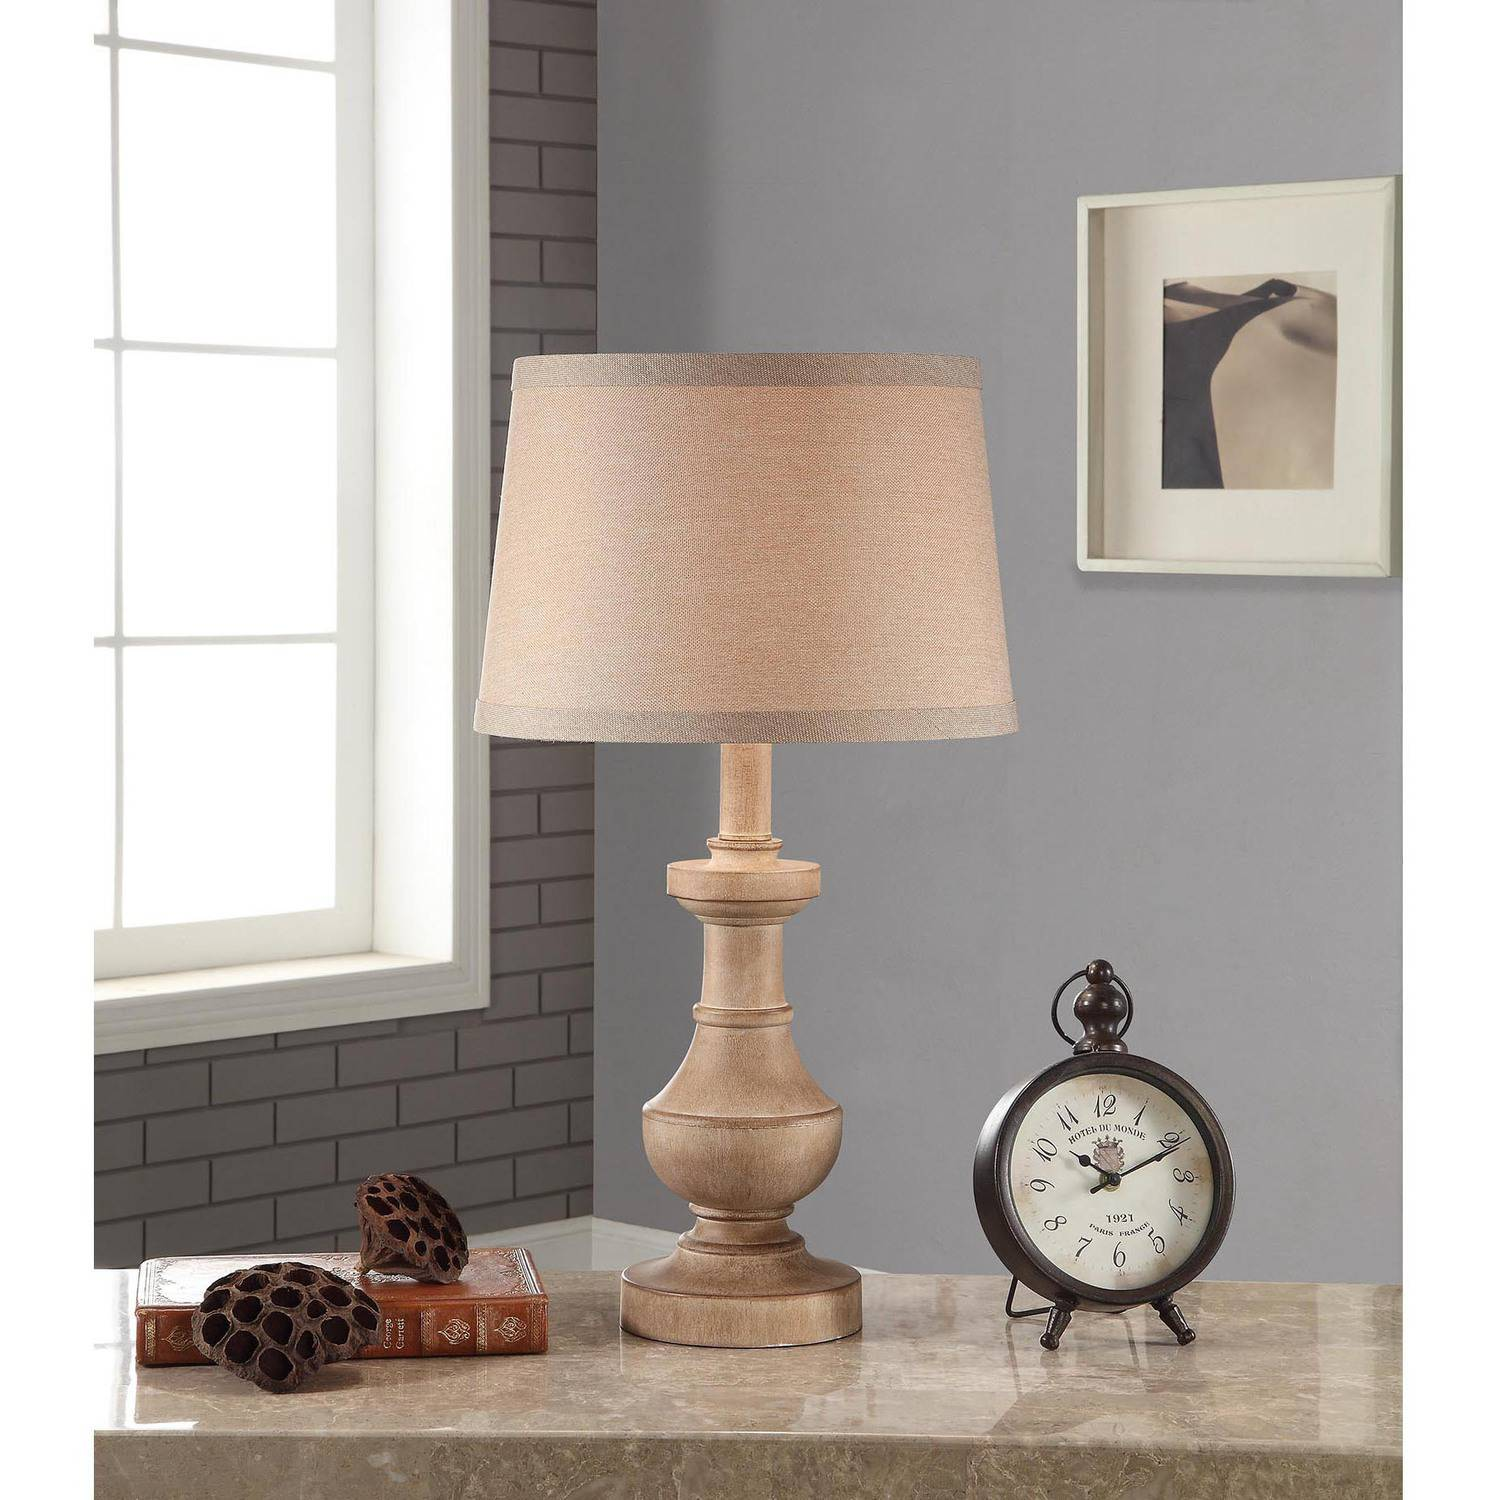 Better homes and gardens rustic table lamp white washed wood better homes and gardens rustic table lamp white washed wood finish walmart aloadofball Image collections